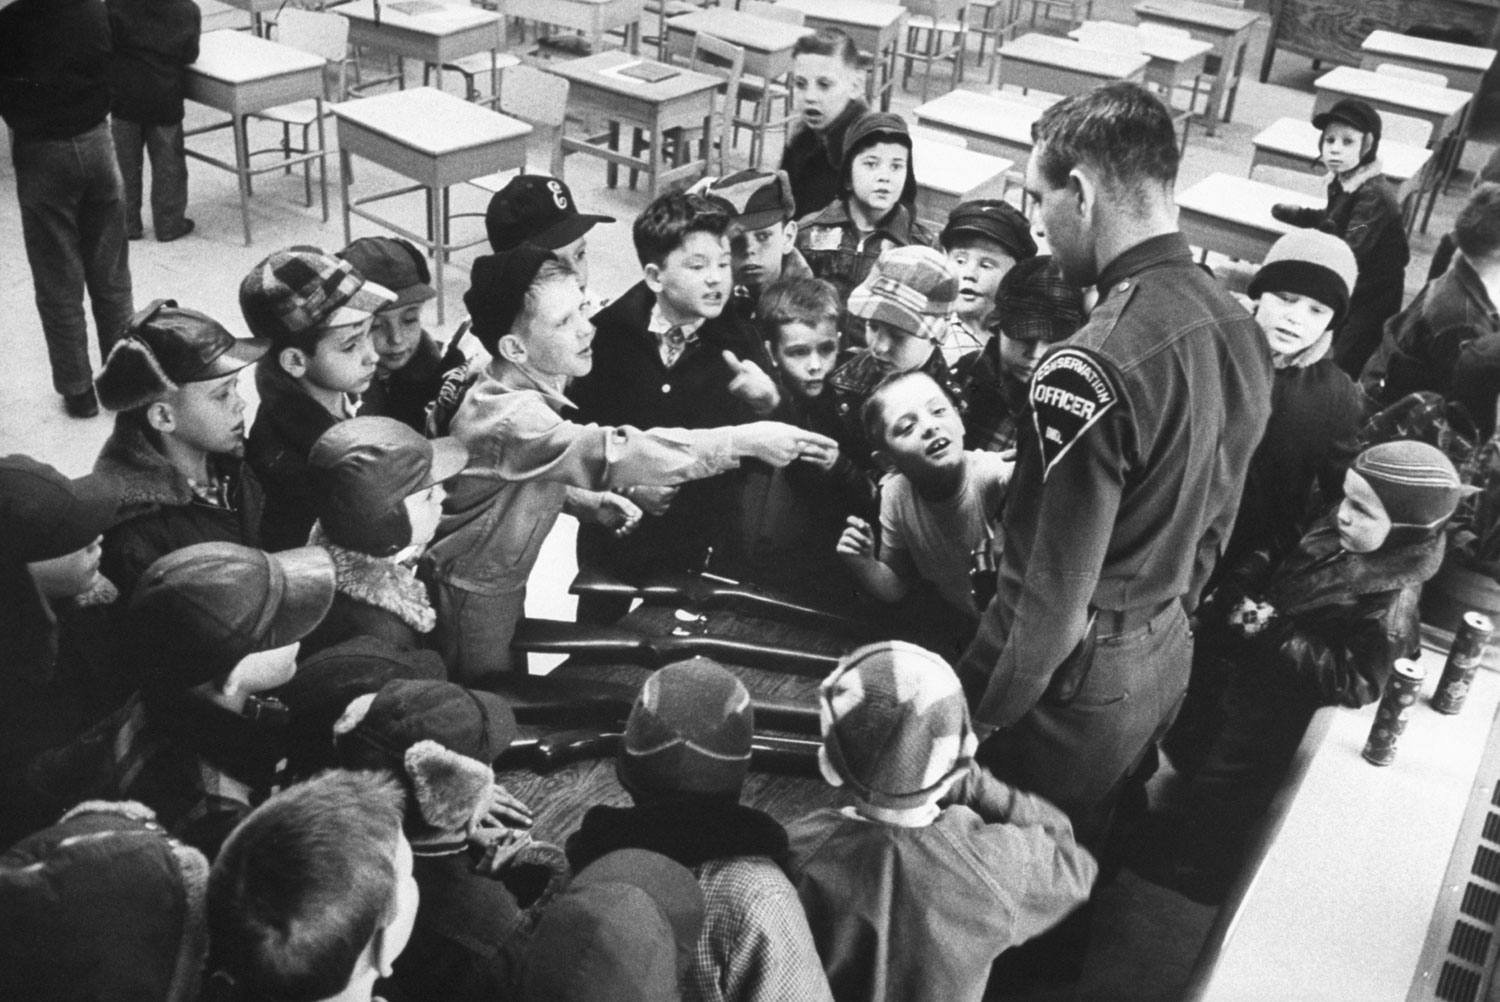 <b>Caption from LIFE.</b> In safety class instructor Rod Rankin is bombarded by Hobart, Ind., boys with questions about gun display and cartridge case in his belt.